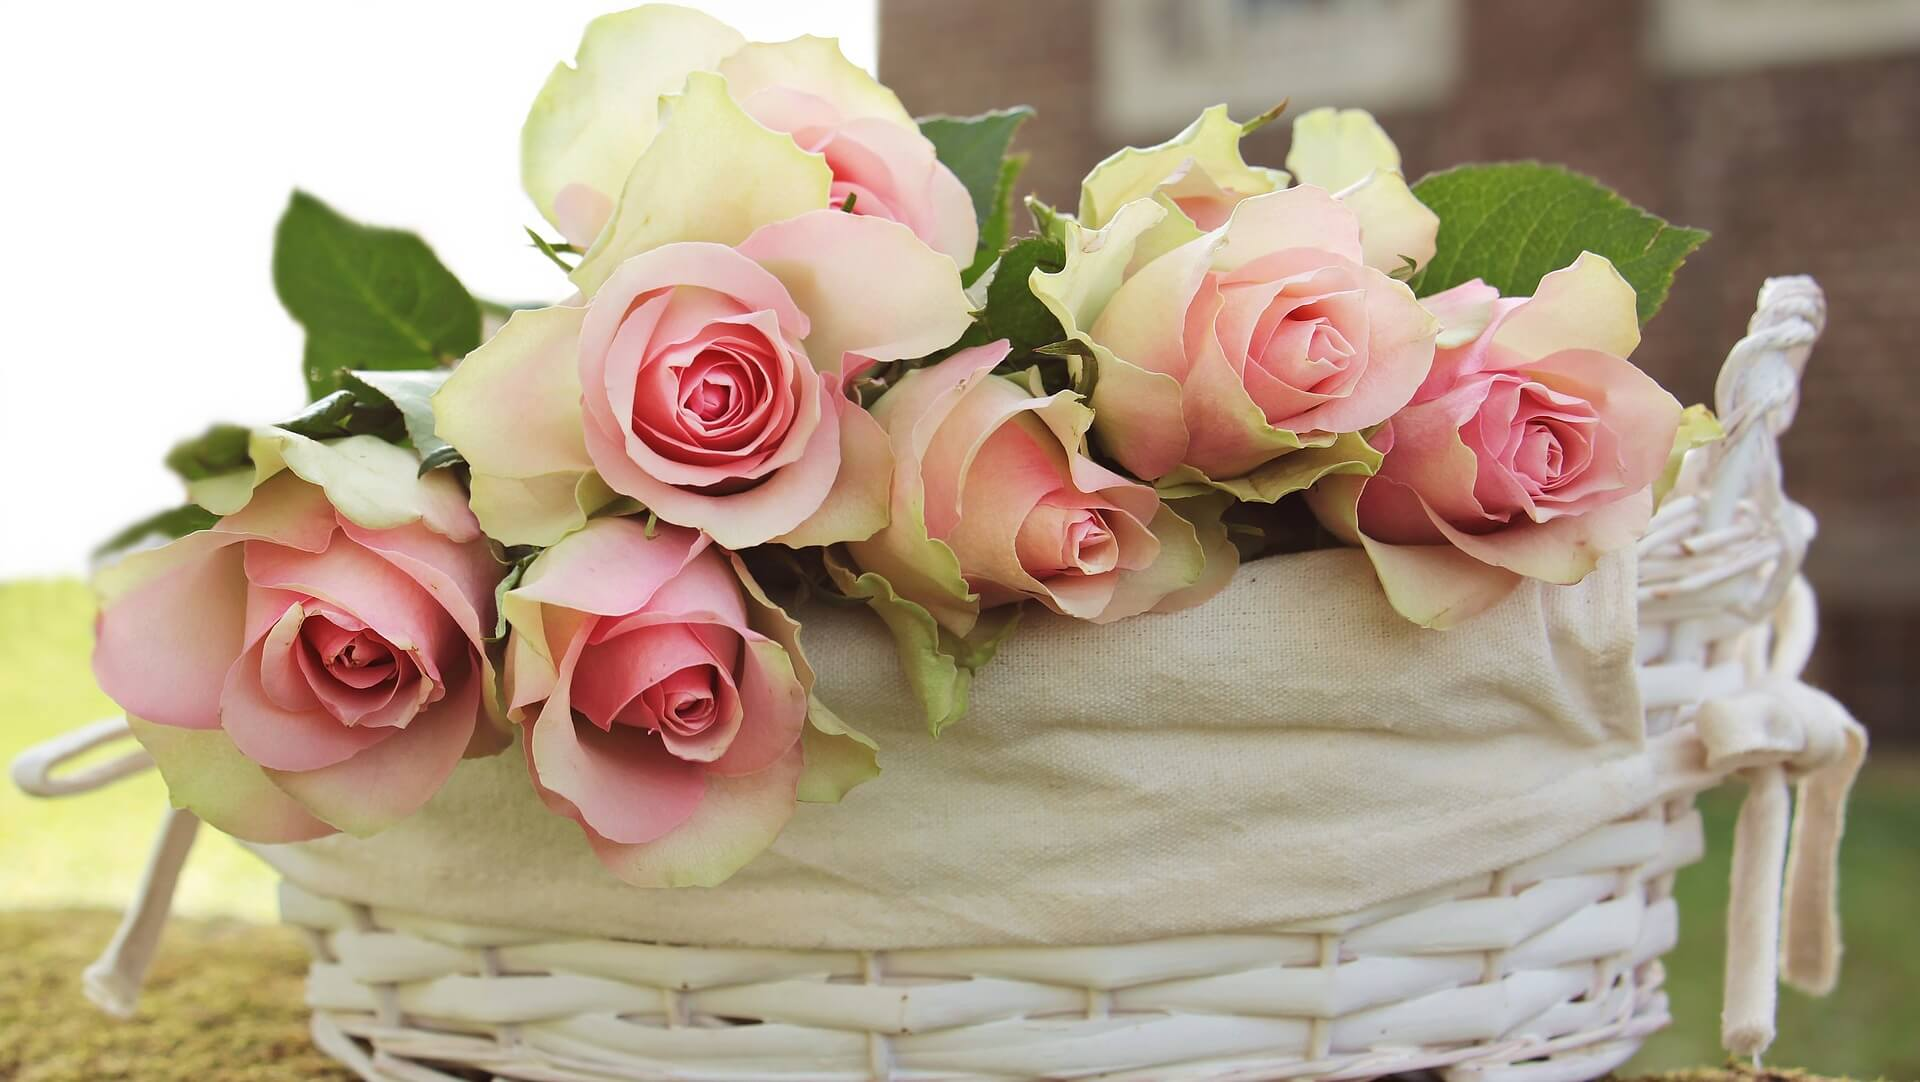 Roses in a bundle